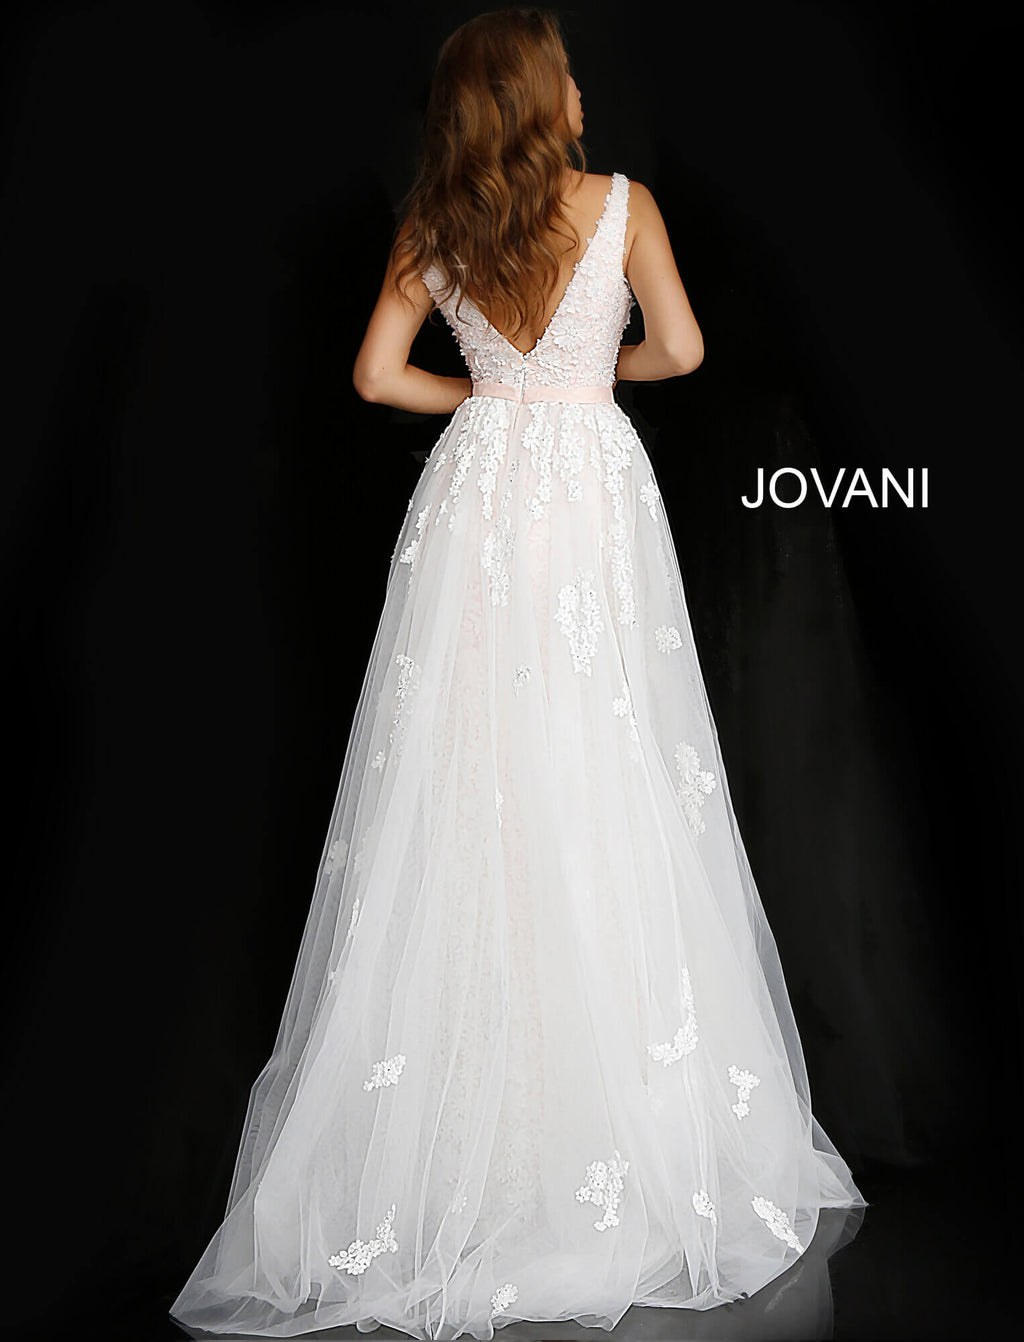 JOVANI 58563 Off White Blush Plunging Neckline Sleeveless Bridal Gown - CYC Boutique